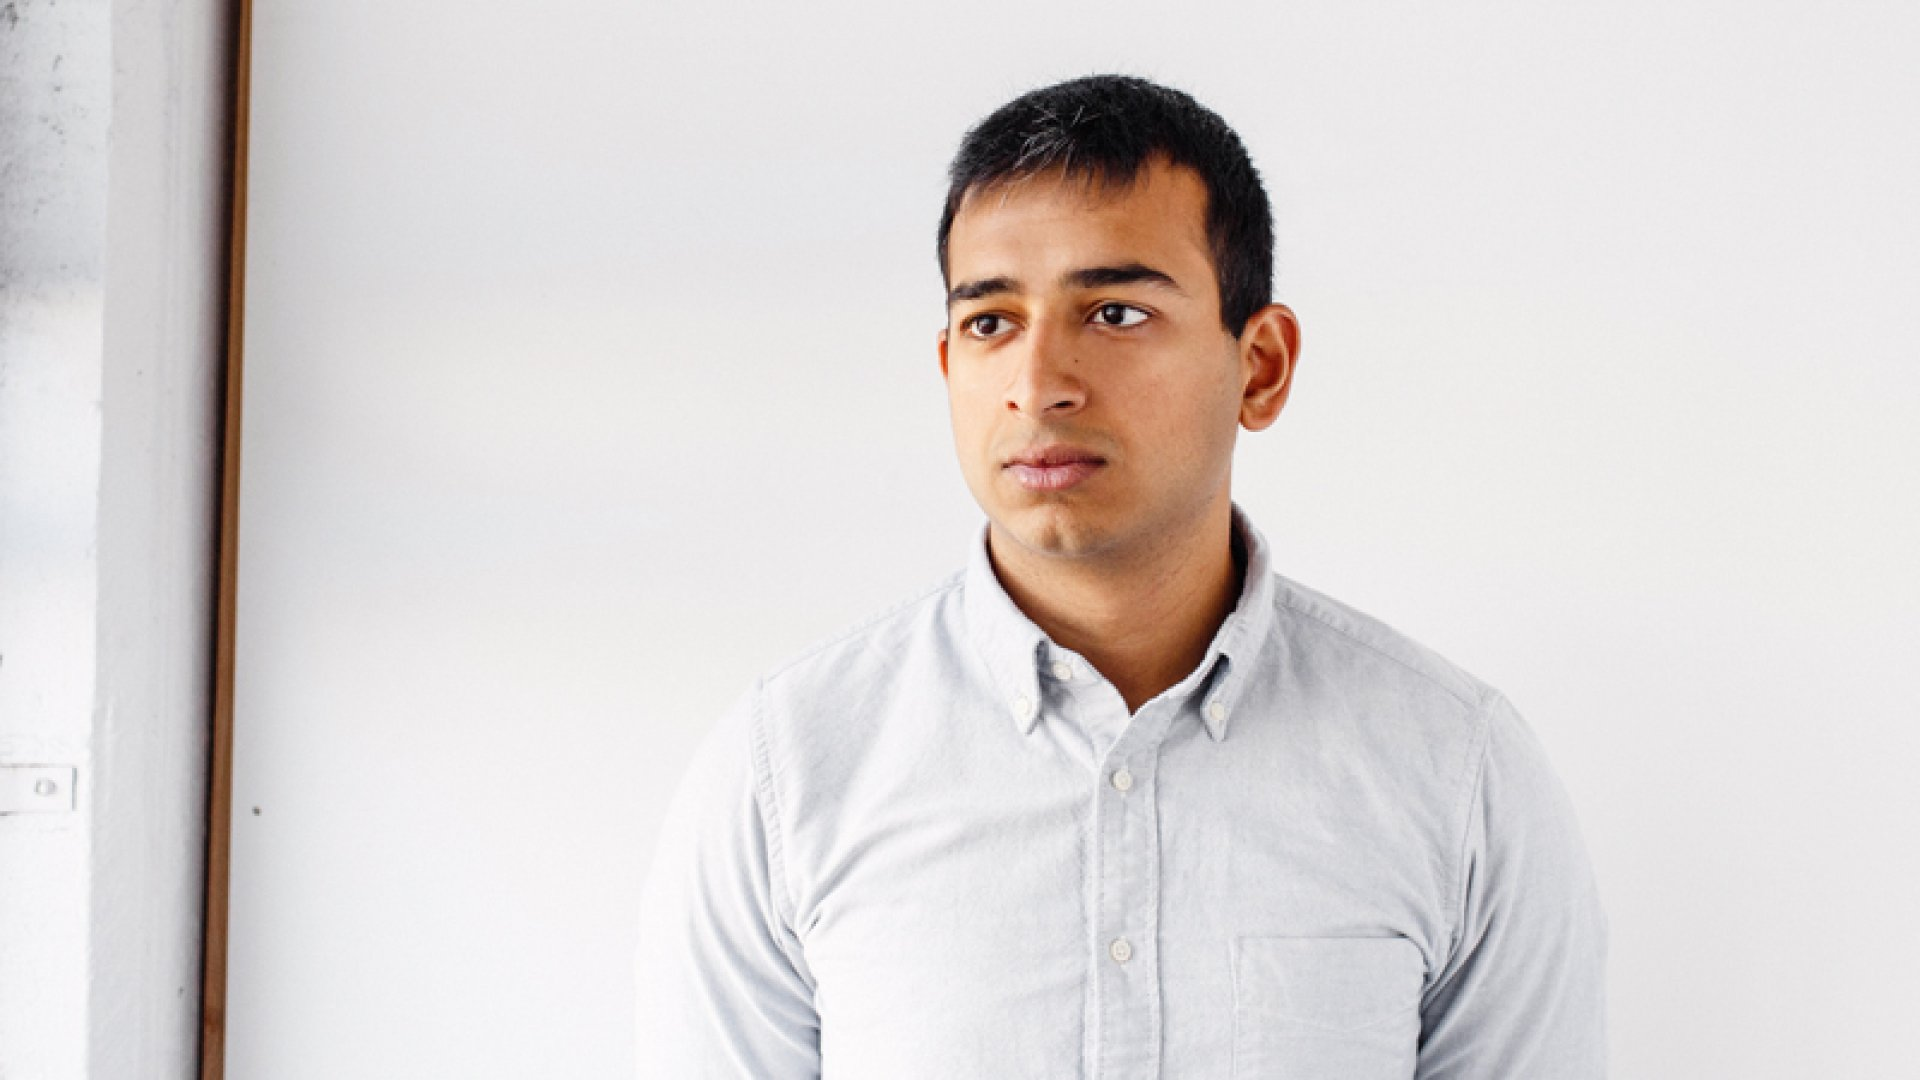 Sahil Lavingia is the founder of Gumroad, a San Francisco social-commerce startup.